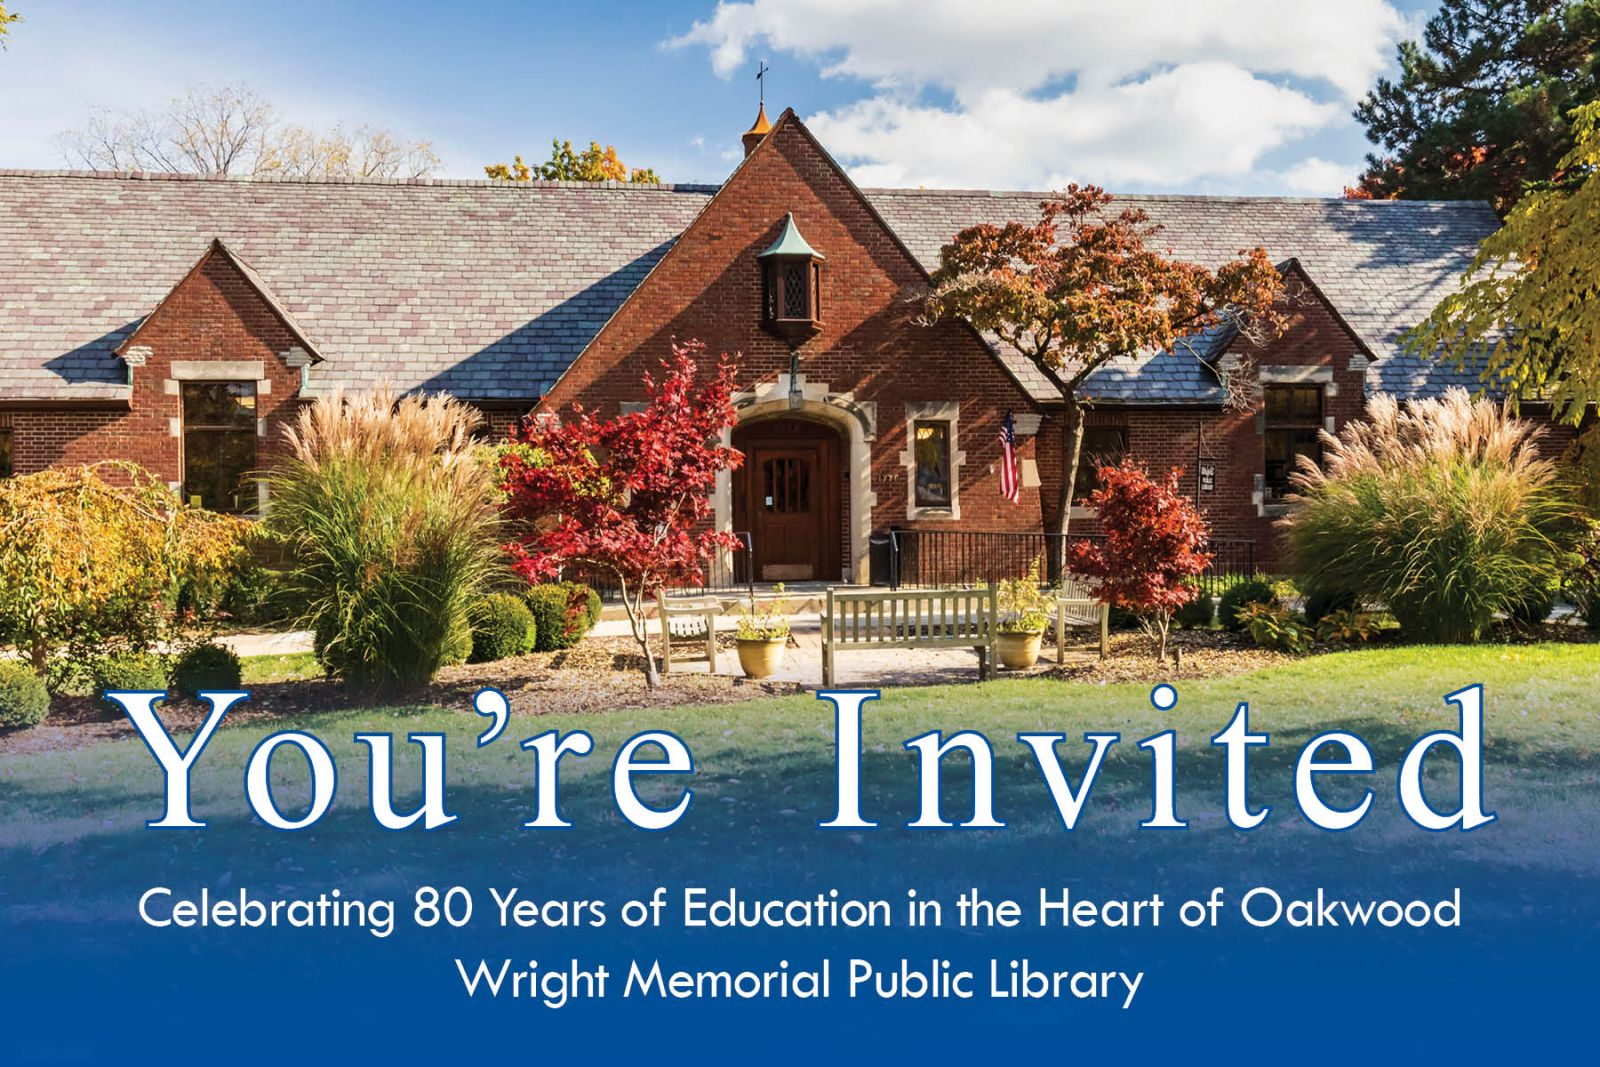 You're invited to celebratie 80 years of education in Oakwood